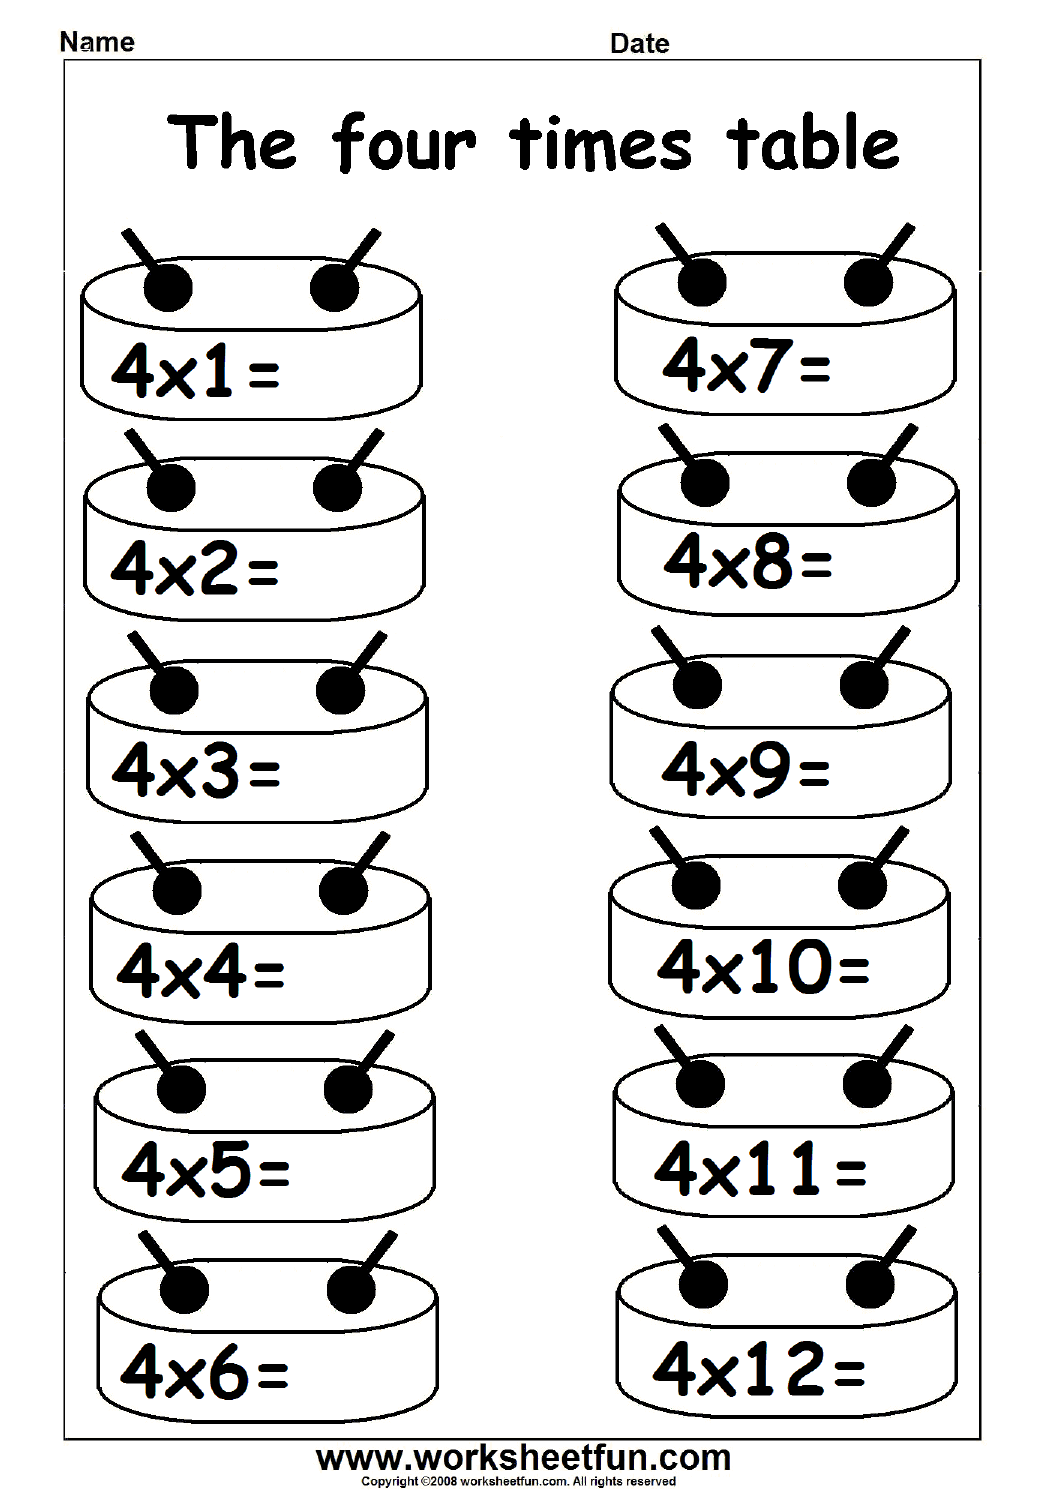 Multiplication Times Tables Worksheets 2 3 4 6 7 8